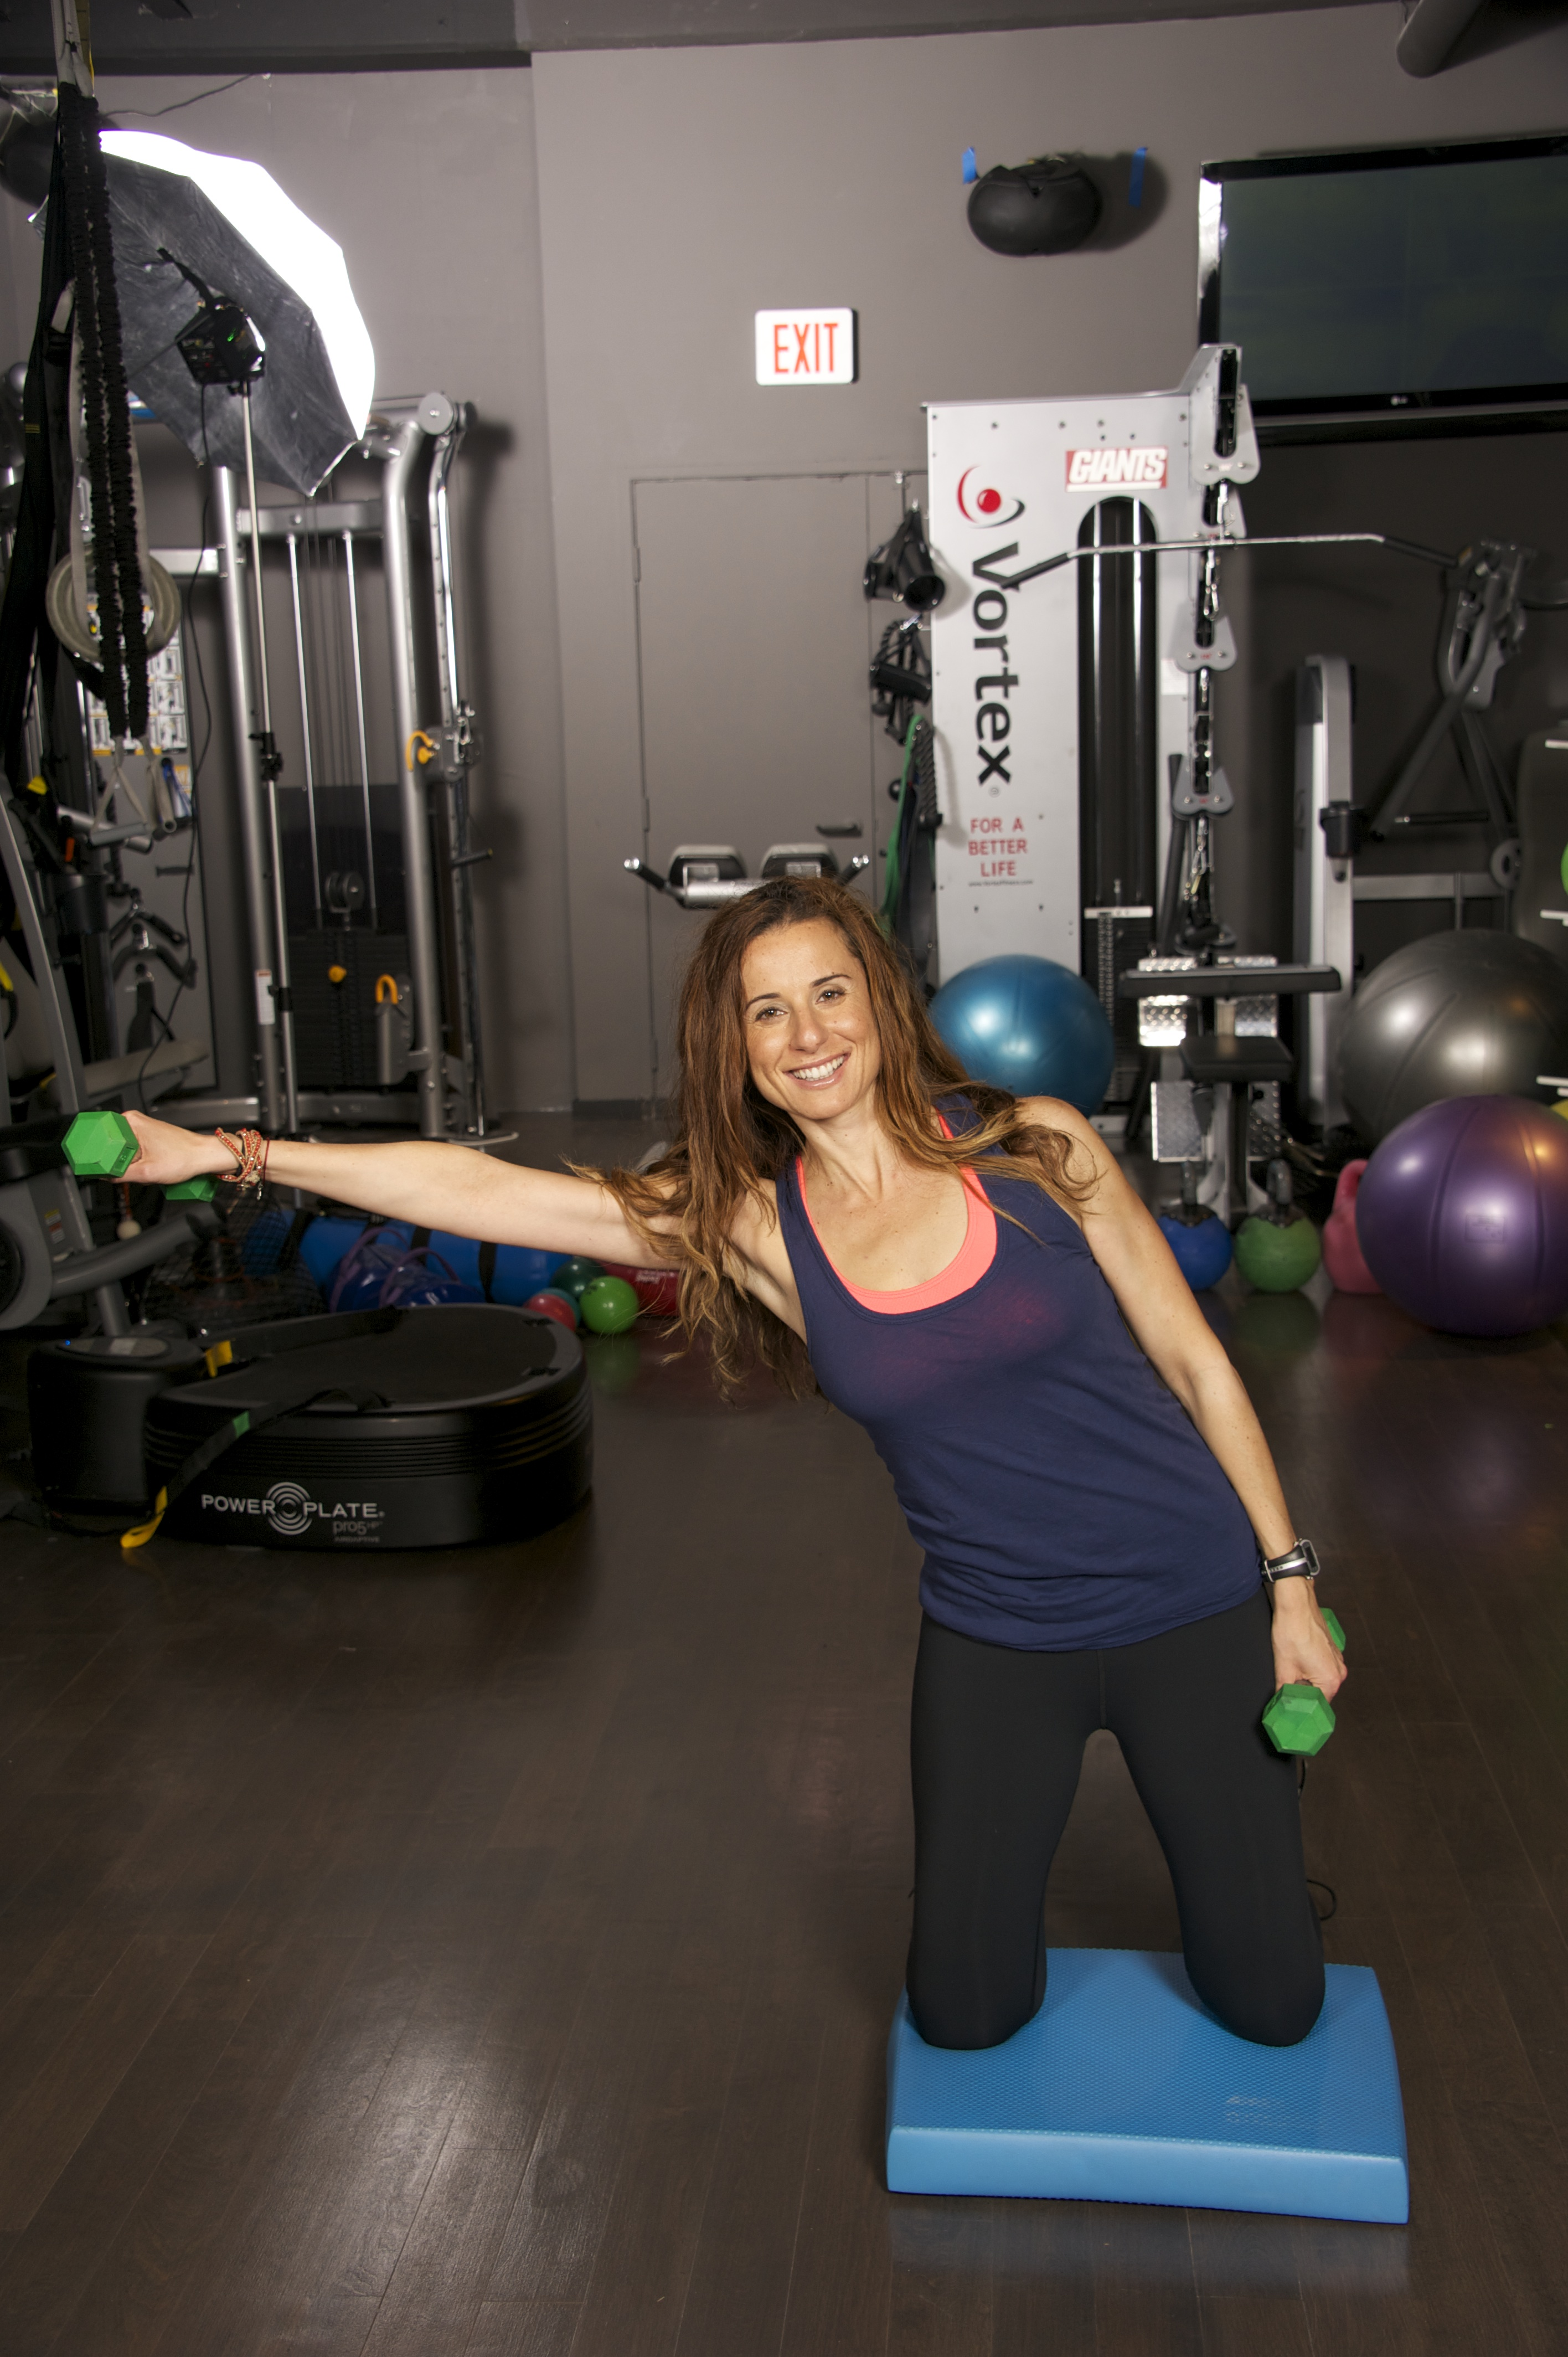 Bend your body to the right side and lift your arm in one clean motion.  The more you bend your body from your core, the more engaged your abs will be.